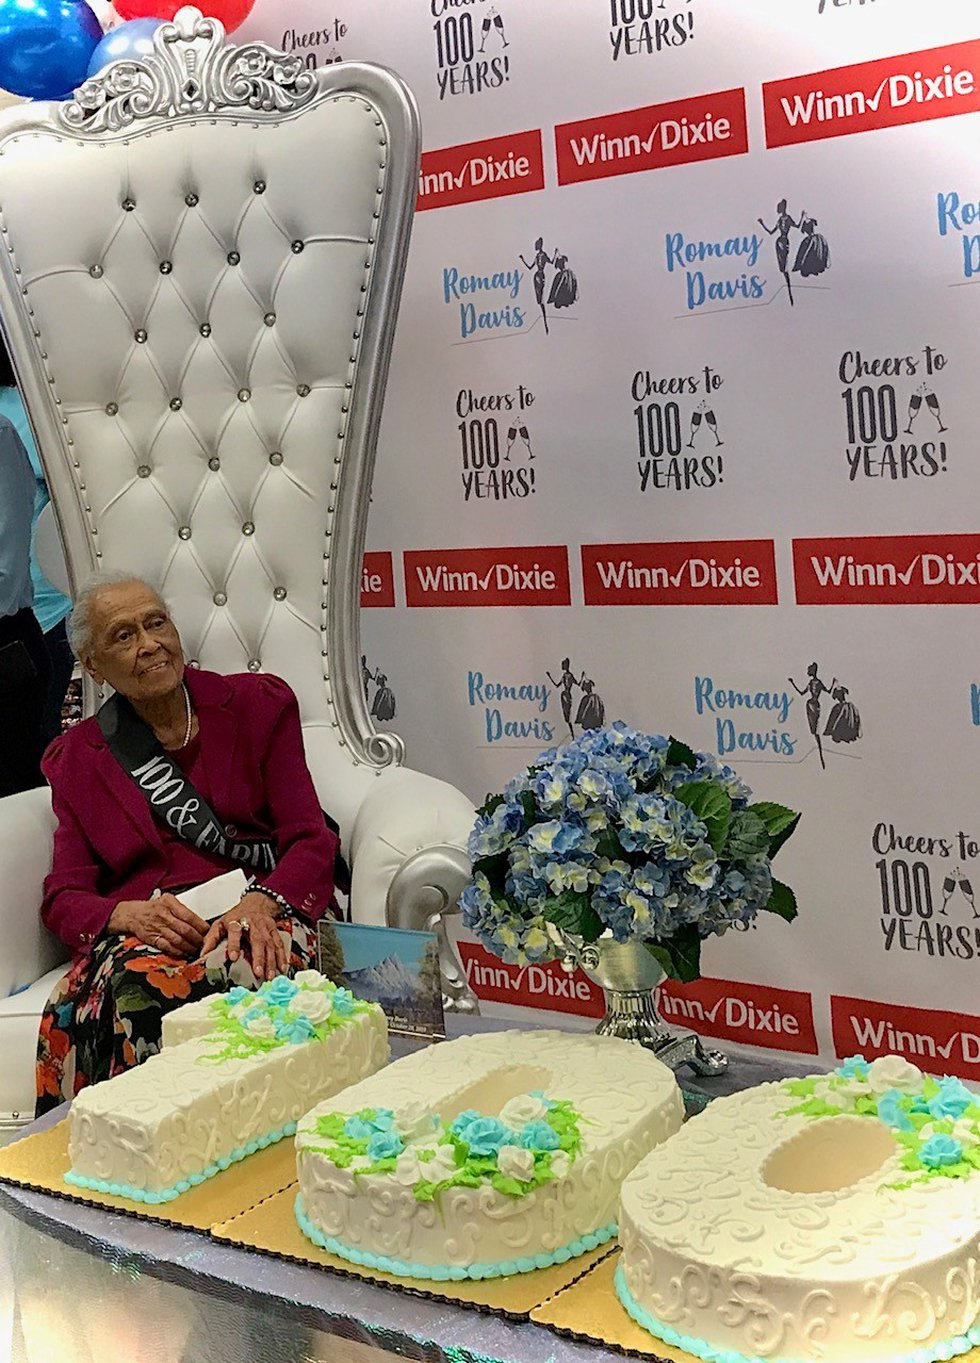 Montgomery Winn-Dixie employee Romay Davis is celebrated by her employer on her 100th birthday.